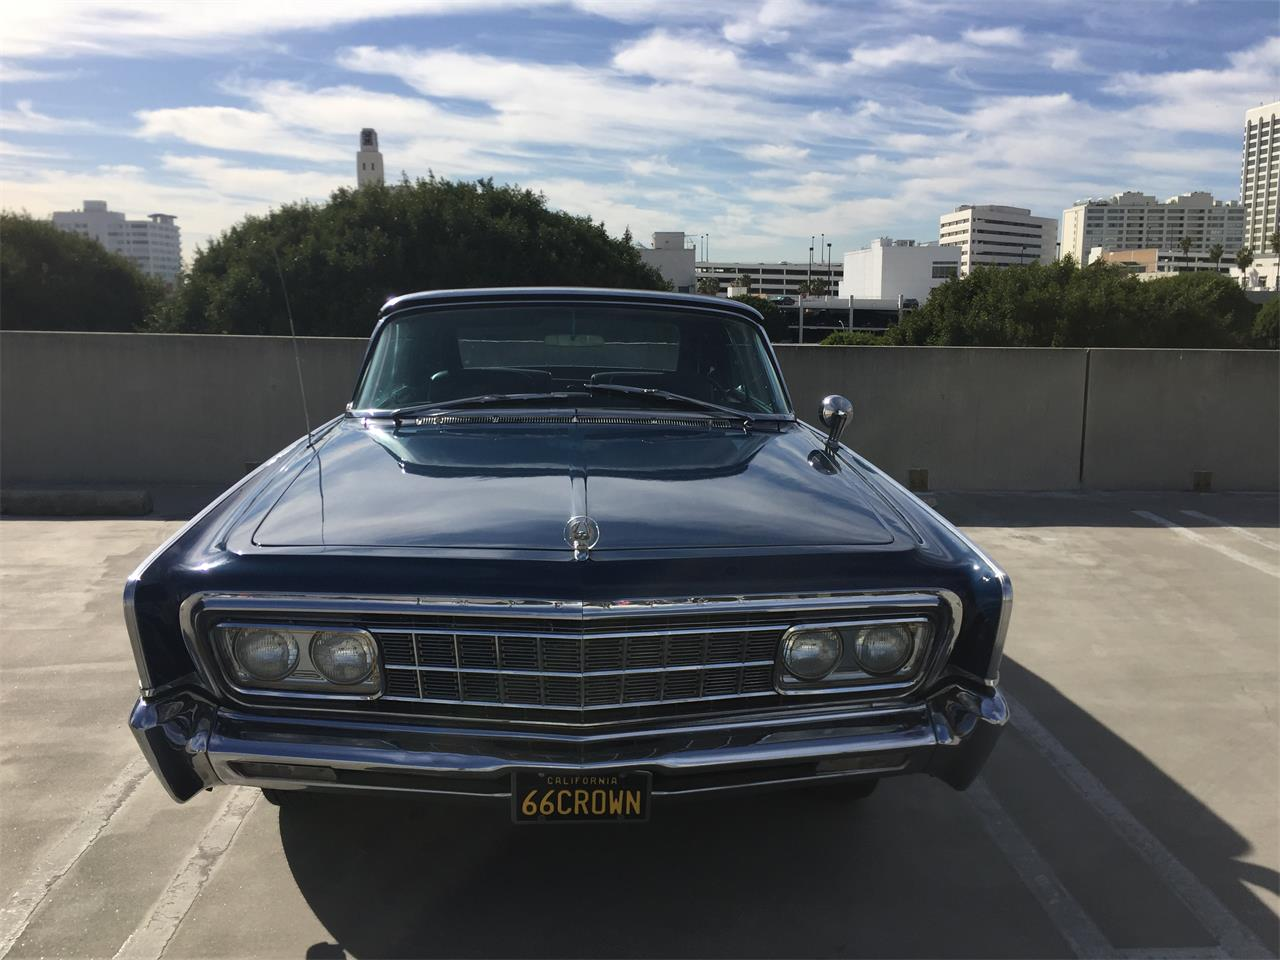 Large Picture of 1966 Chrysler Imperial - $24,400.00 Offered by a Private Seller - N5J6